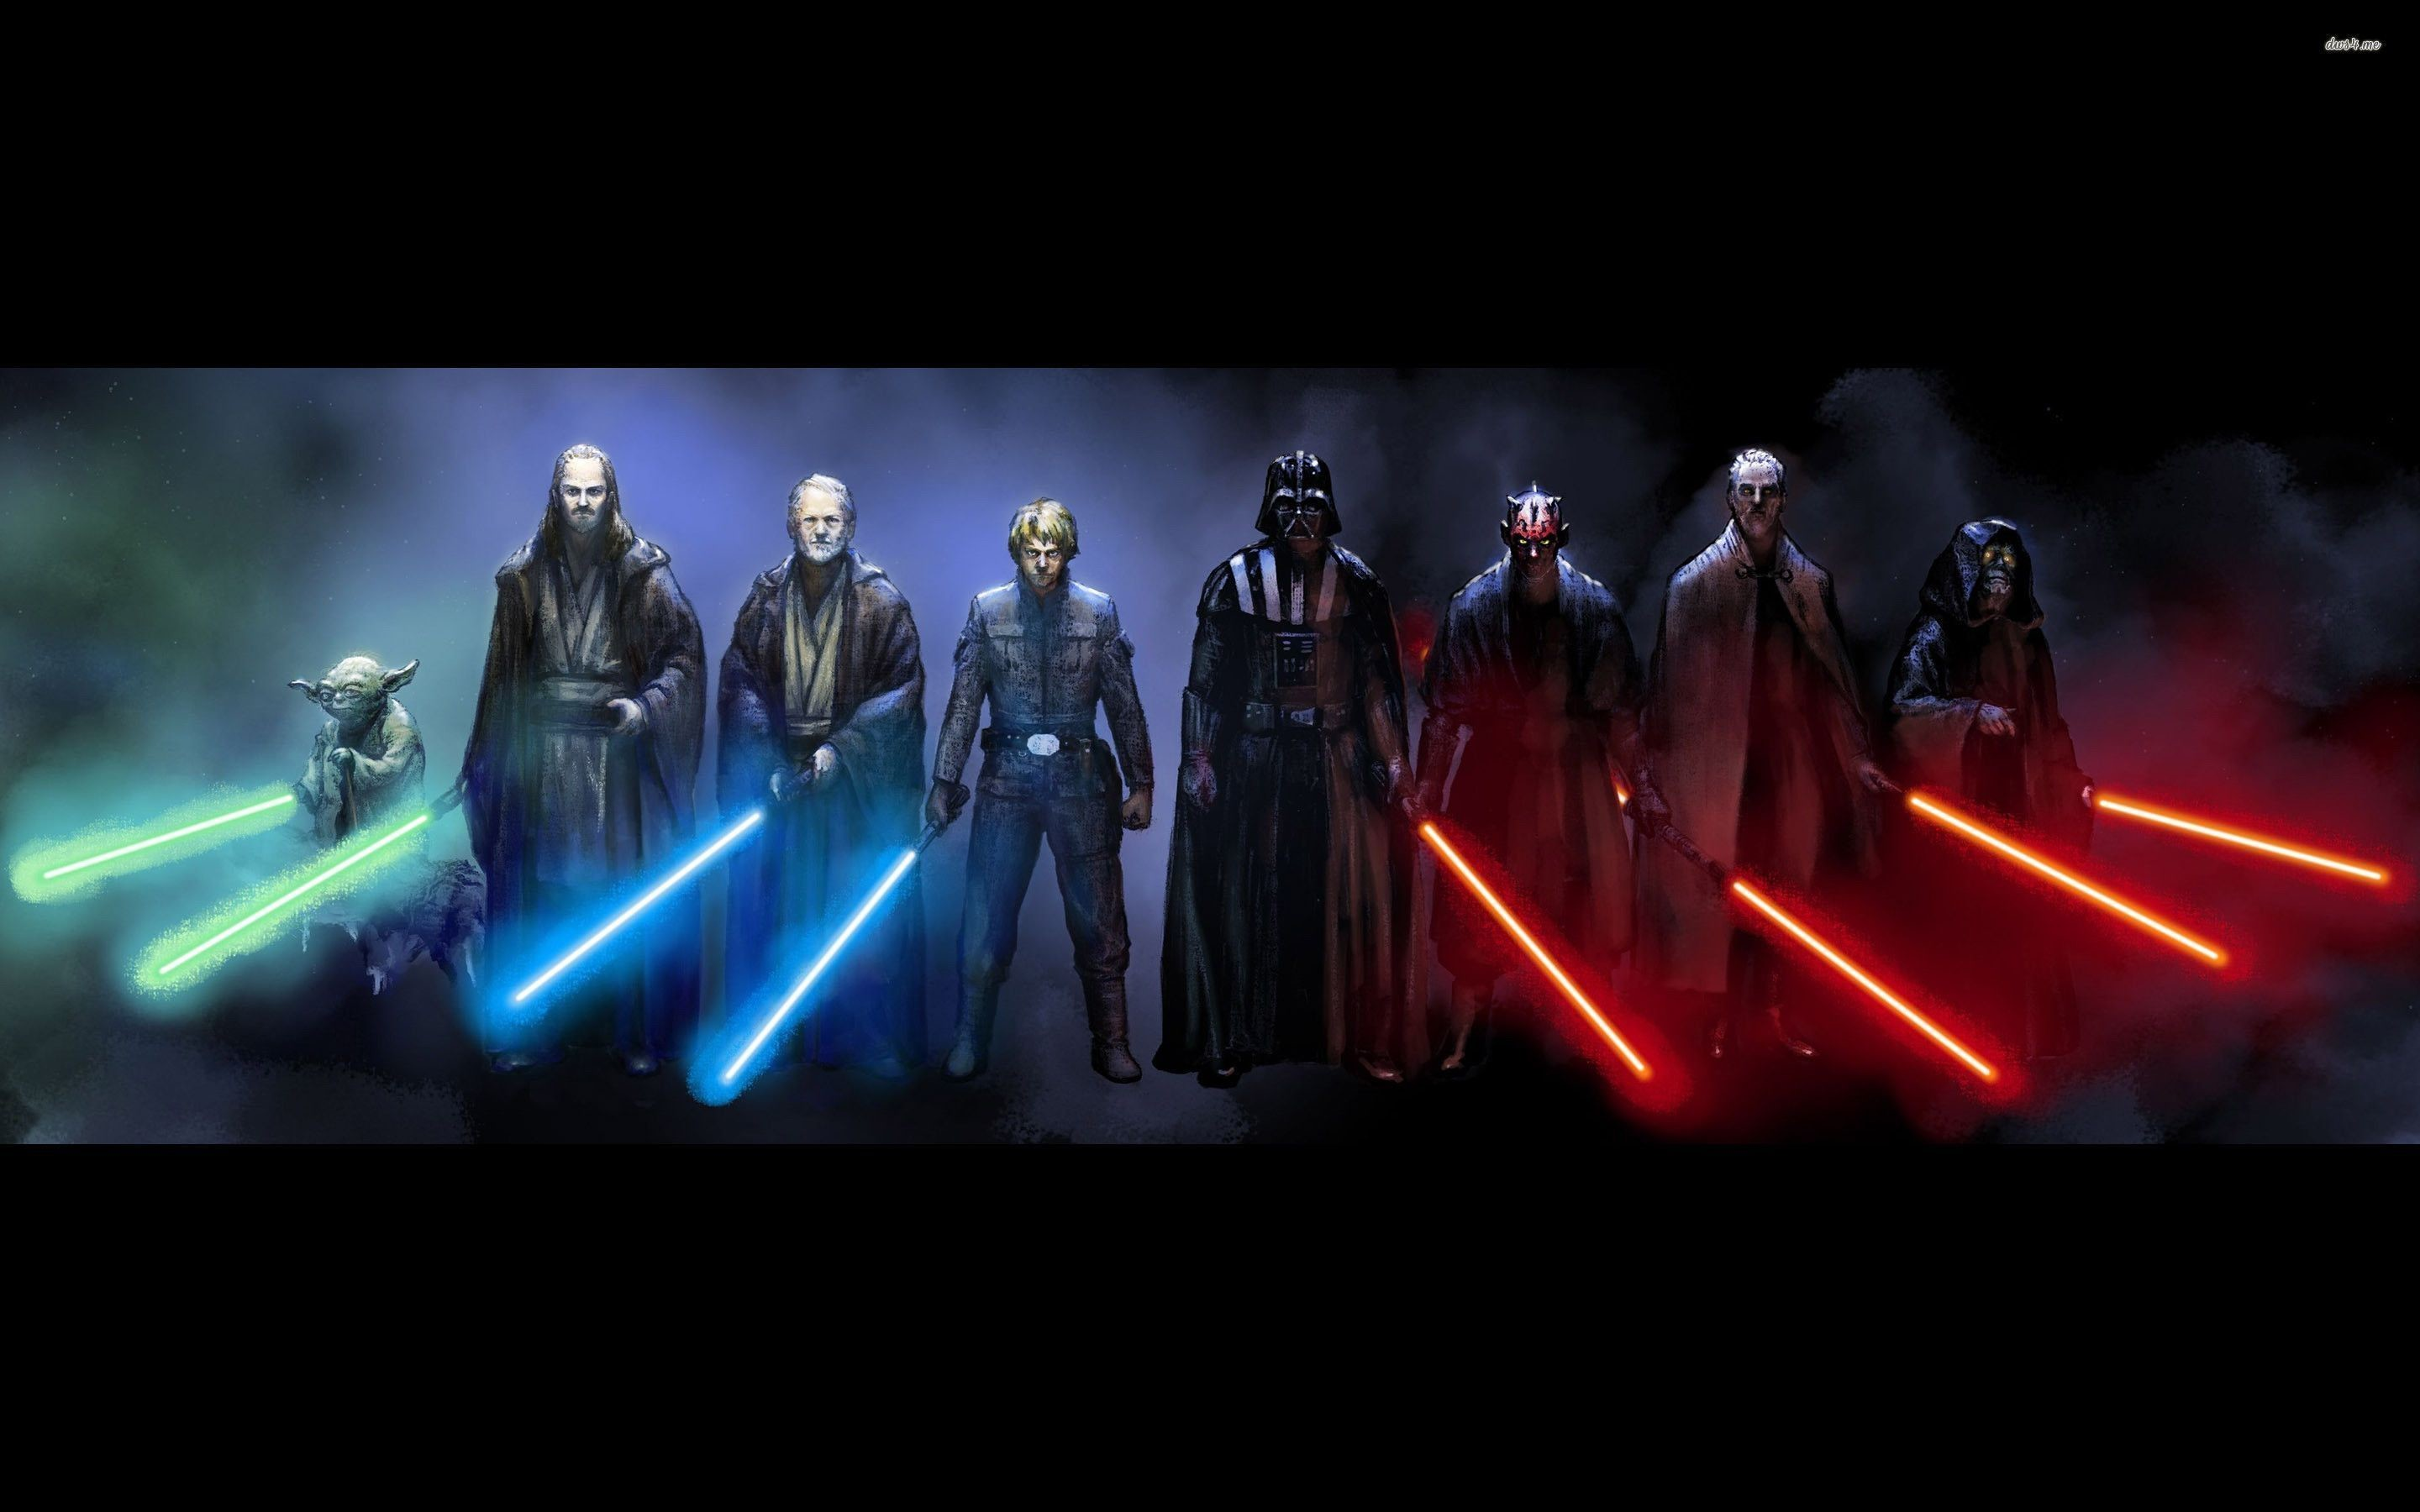 Star Wars Sith Wallpapers – Wallpaper Cave